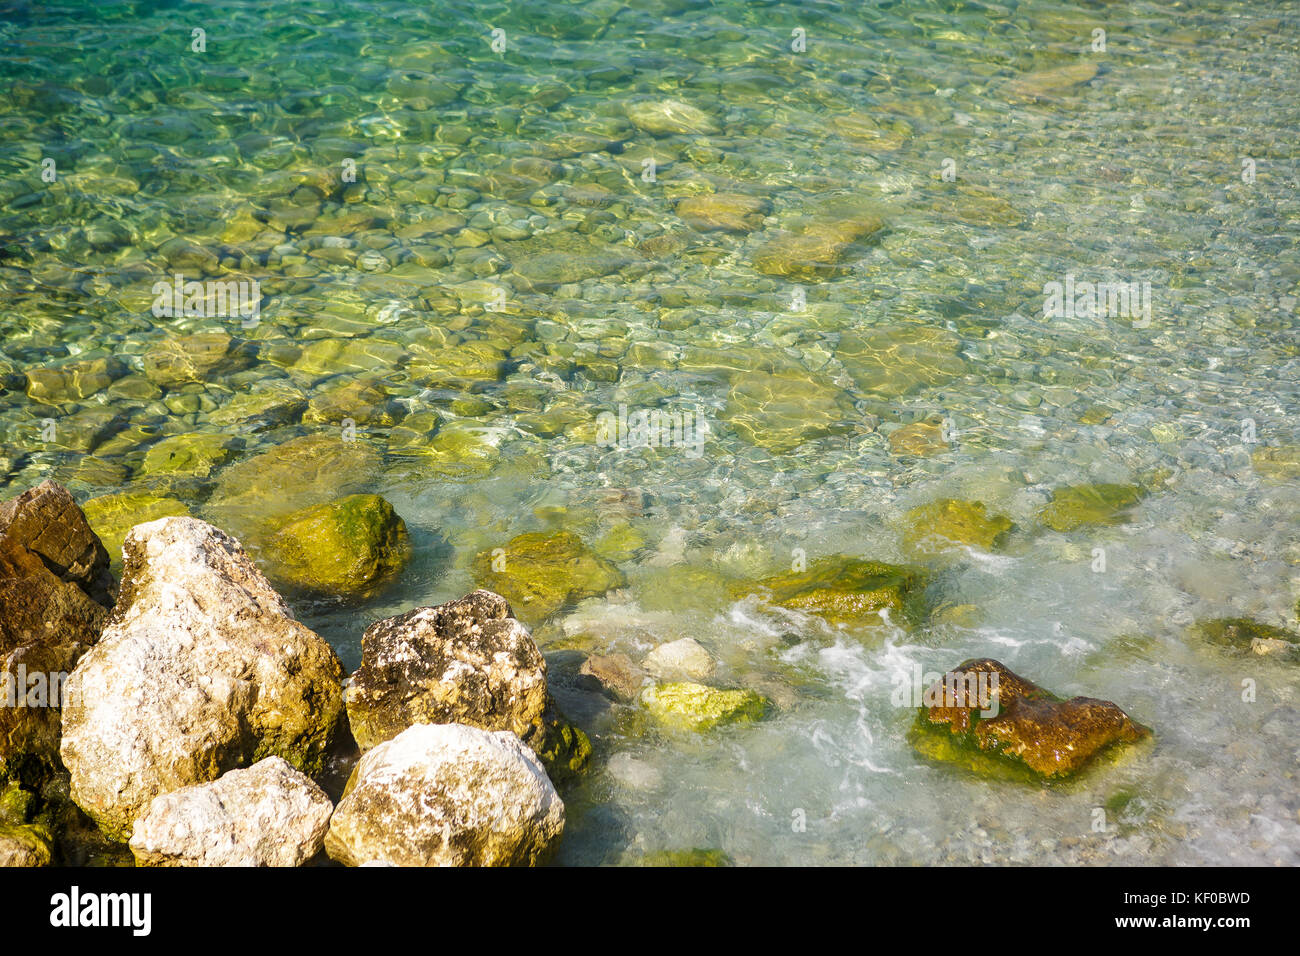 Aerial view of stones on bottom of Adriatic Sea - Stock Image